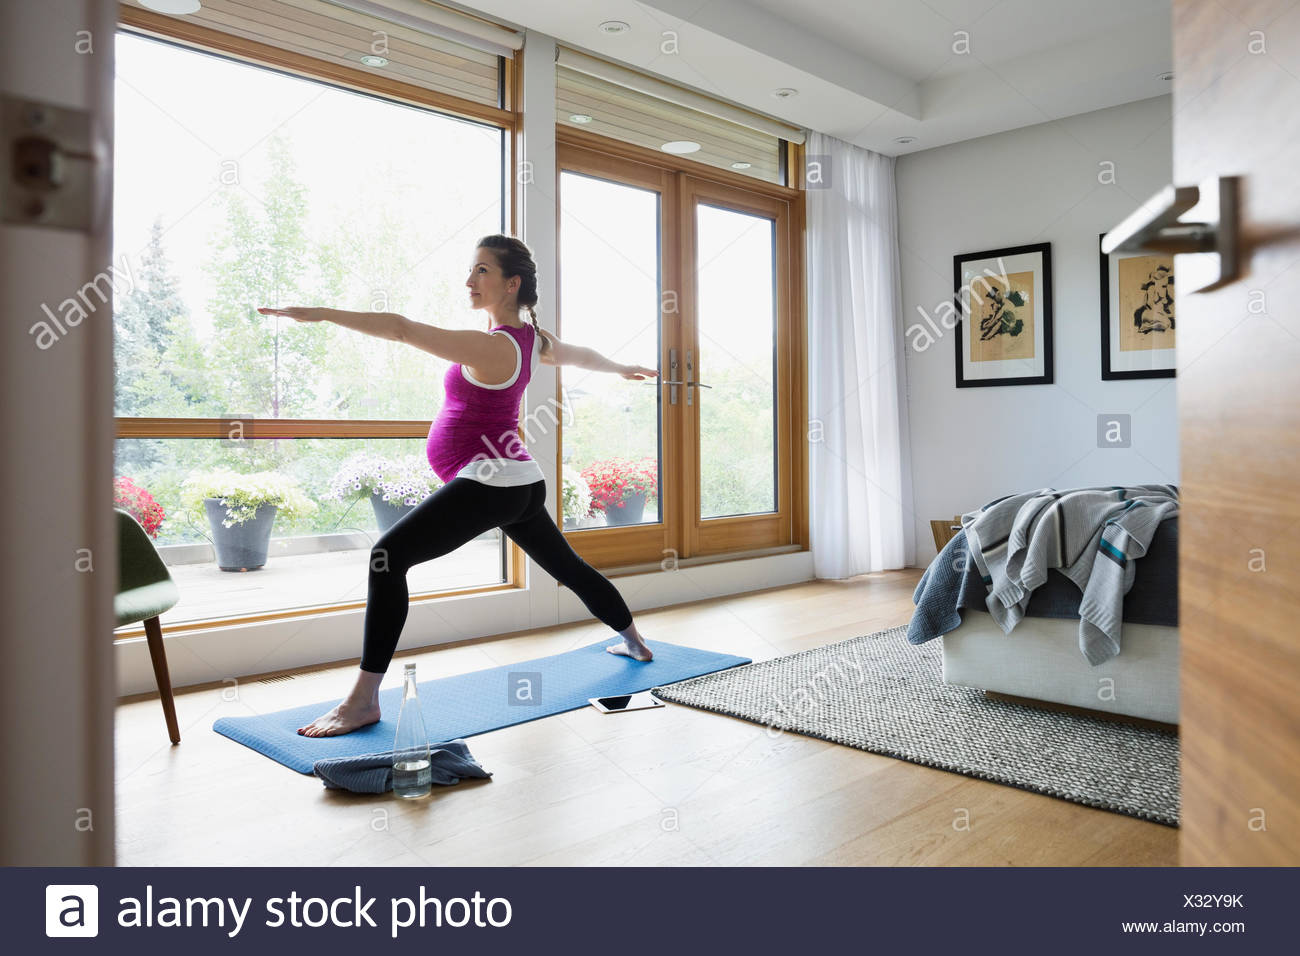 Pregnant Woman Practicing Warrior 2 Yoga Pose In Bedroom